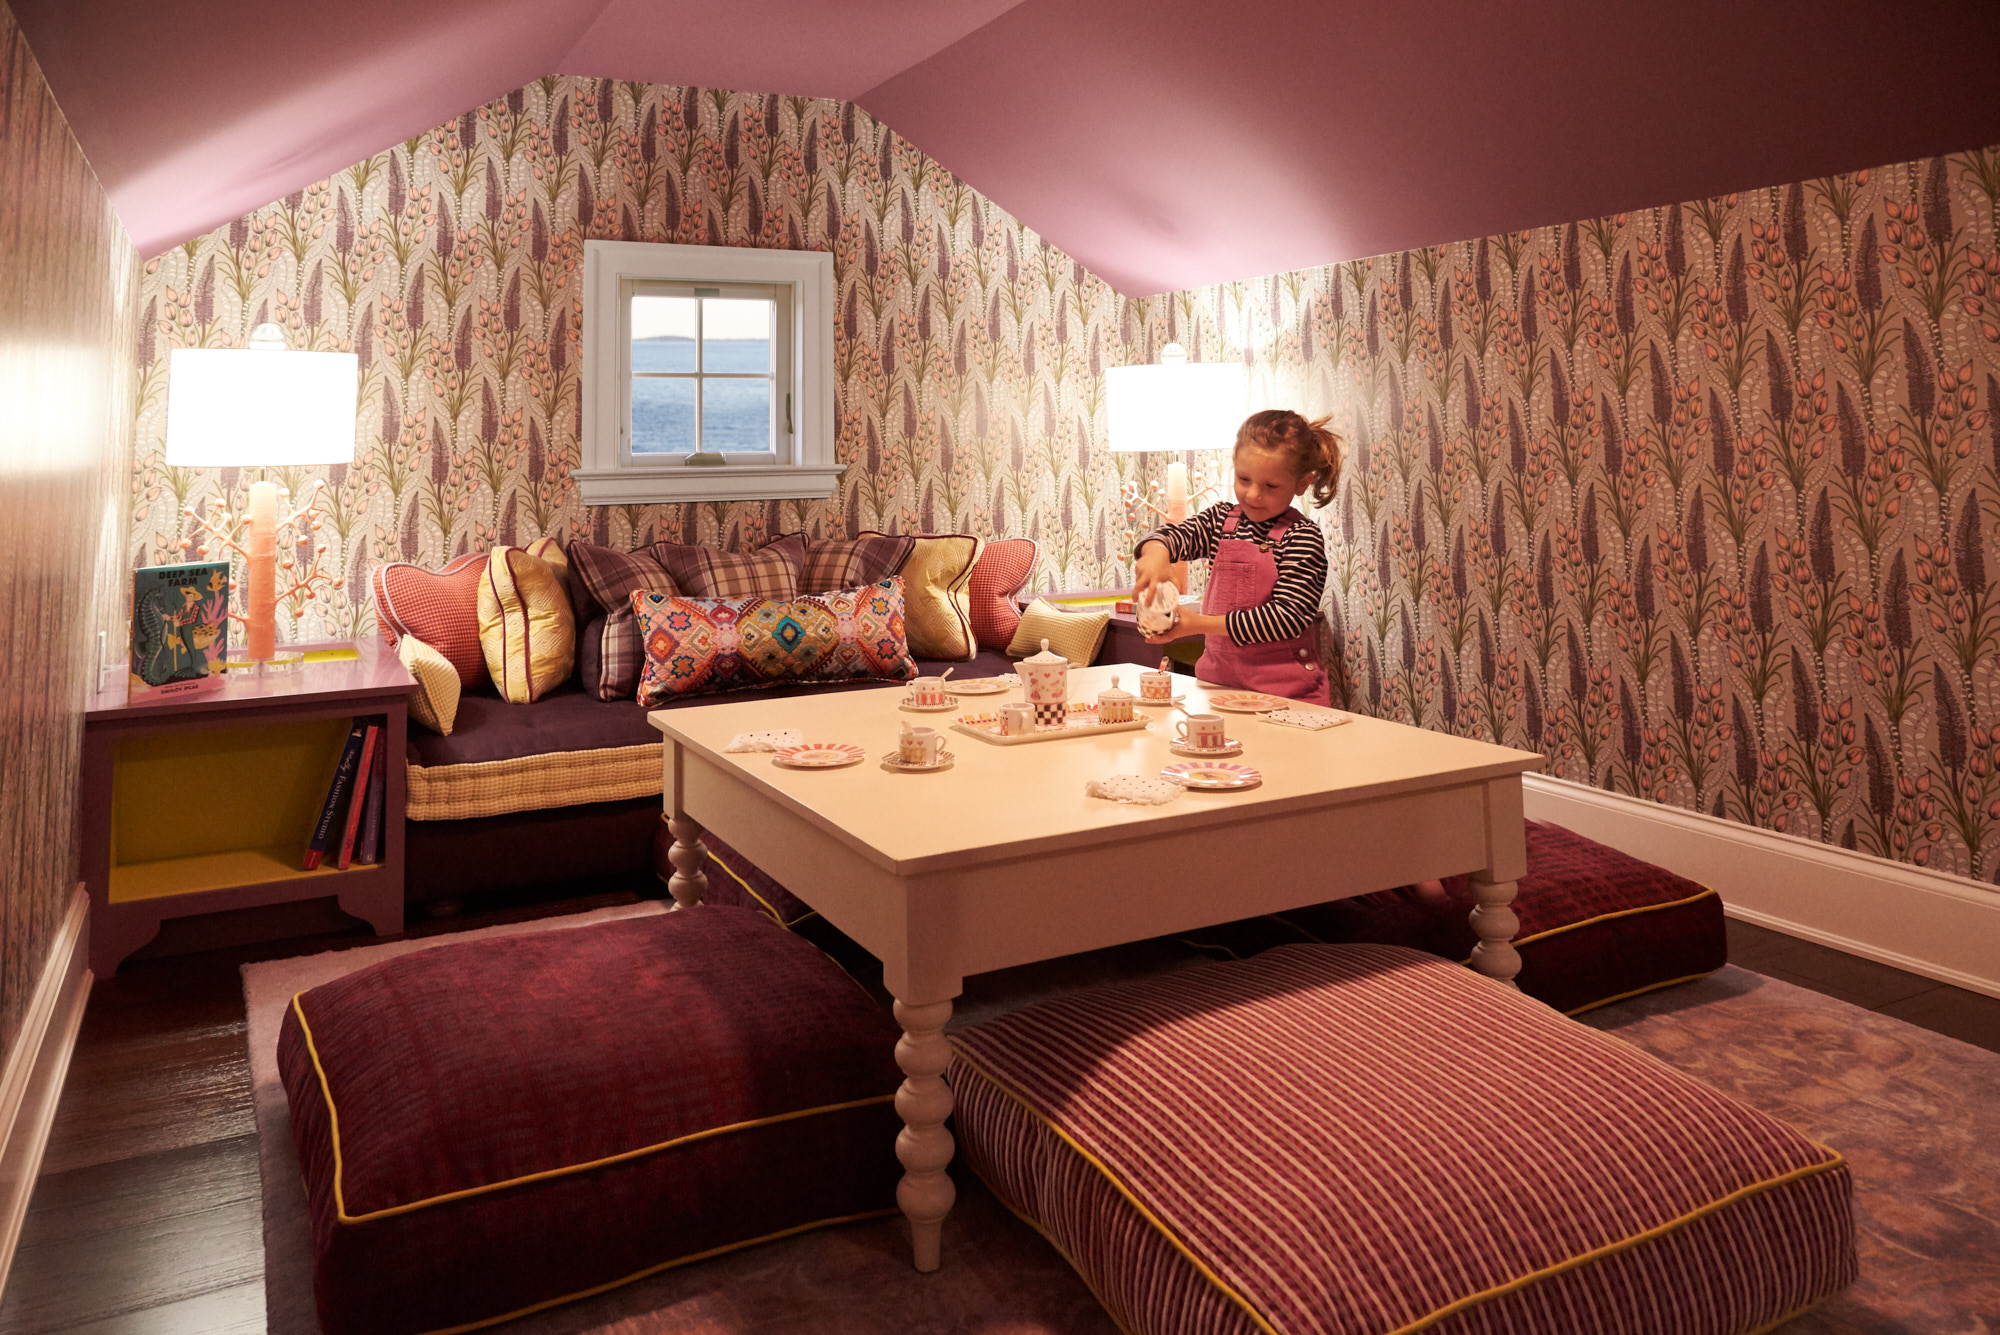 A fun and cozy tea party room with unique wallpaper and patterns.